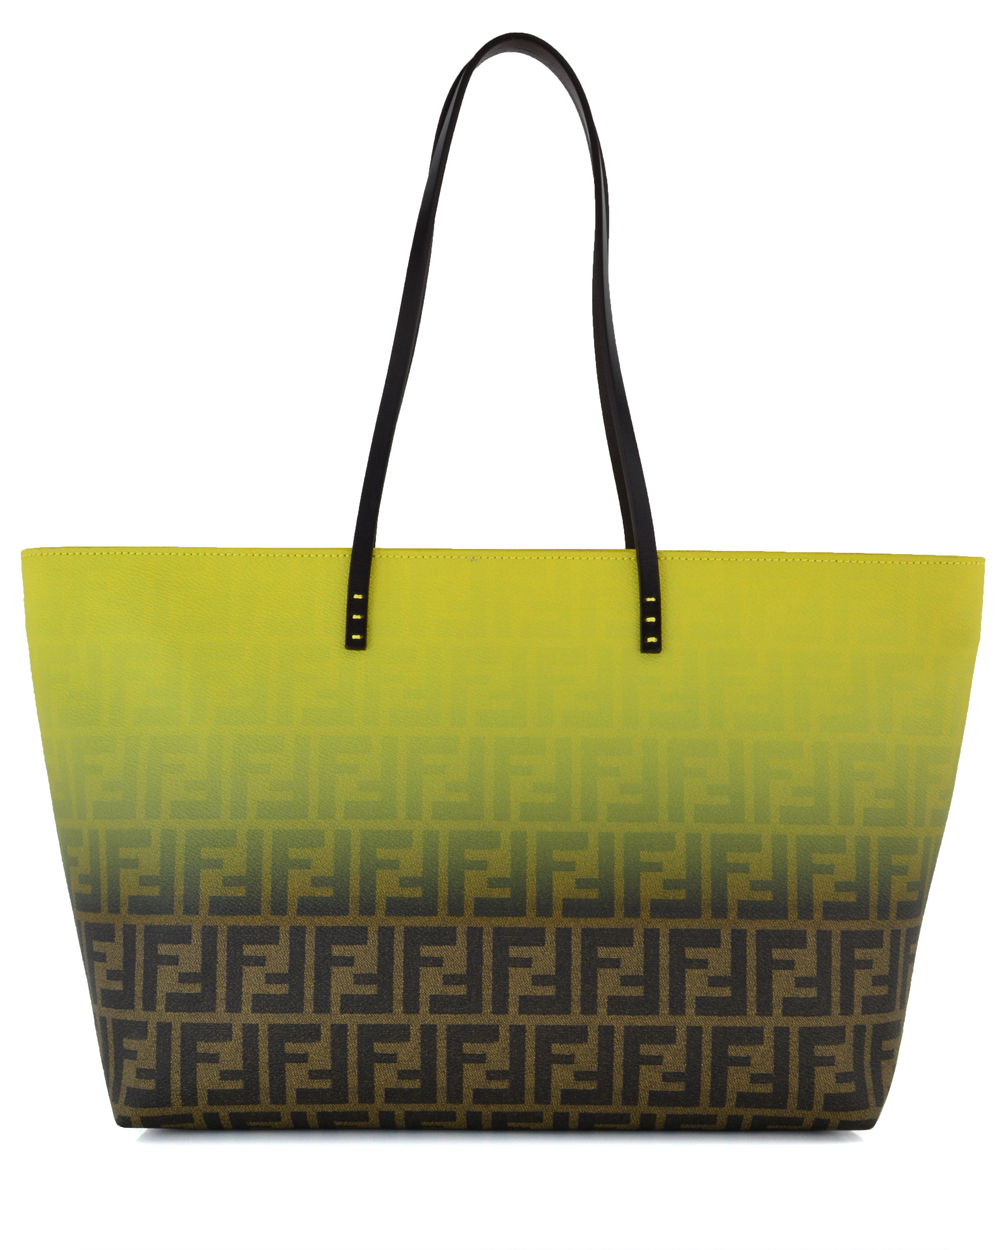 3d6d3ca549 Lyst - Fendi Yellow Ombre Zucca Tote in Yellow